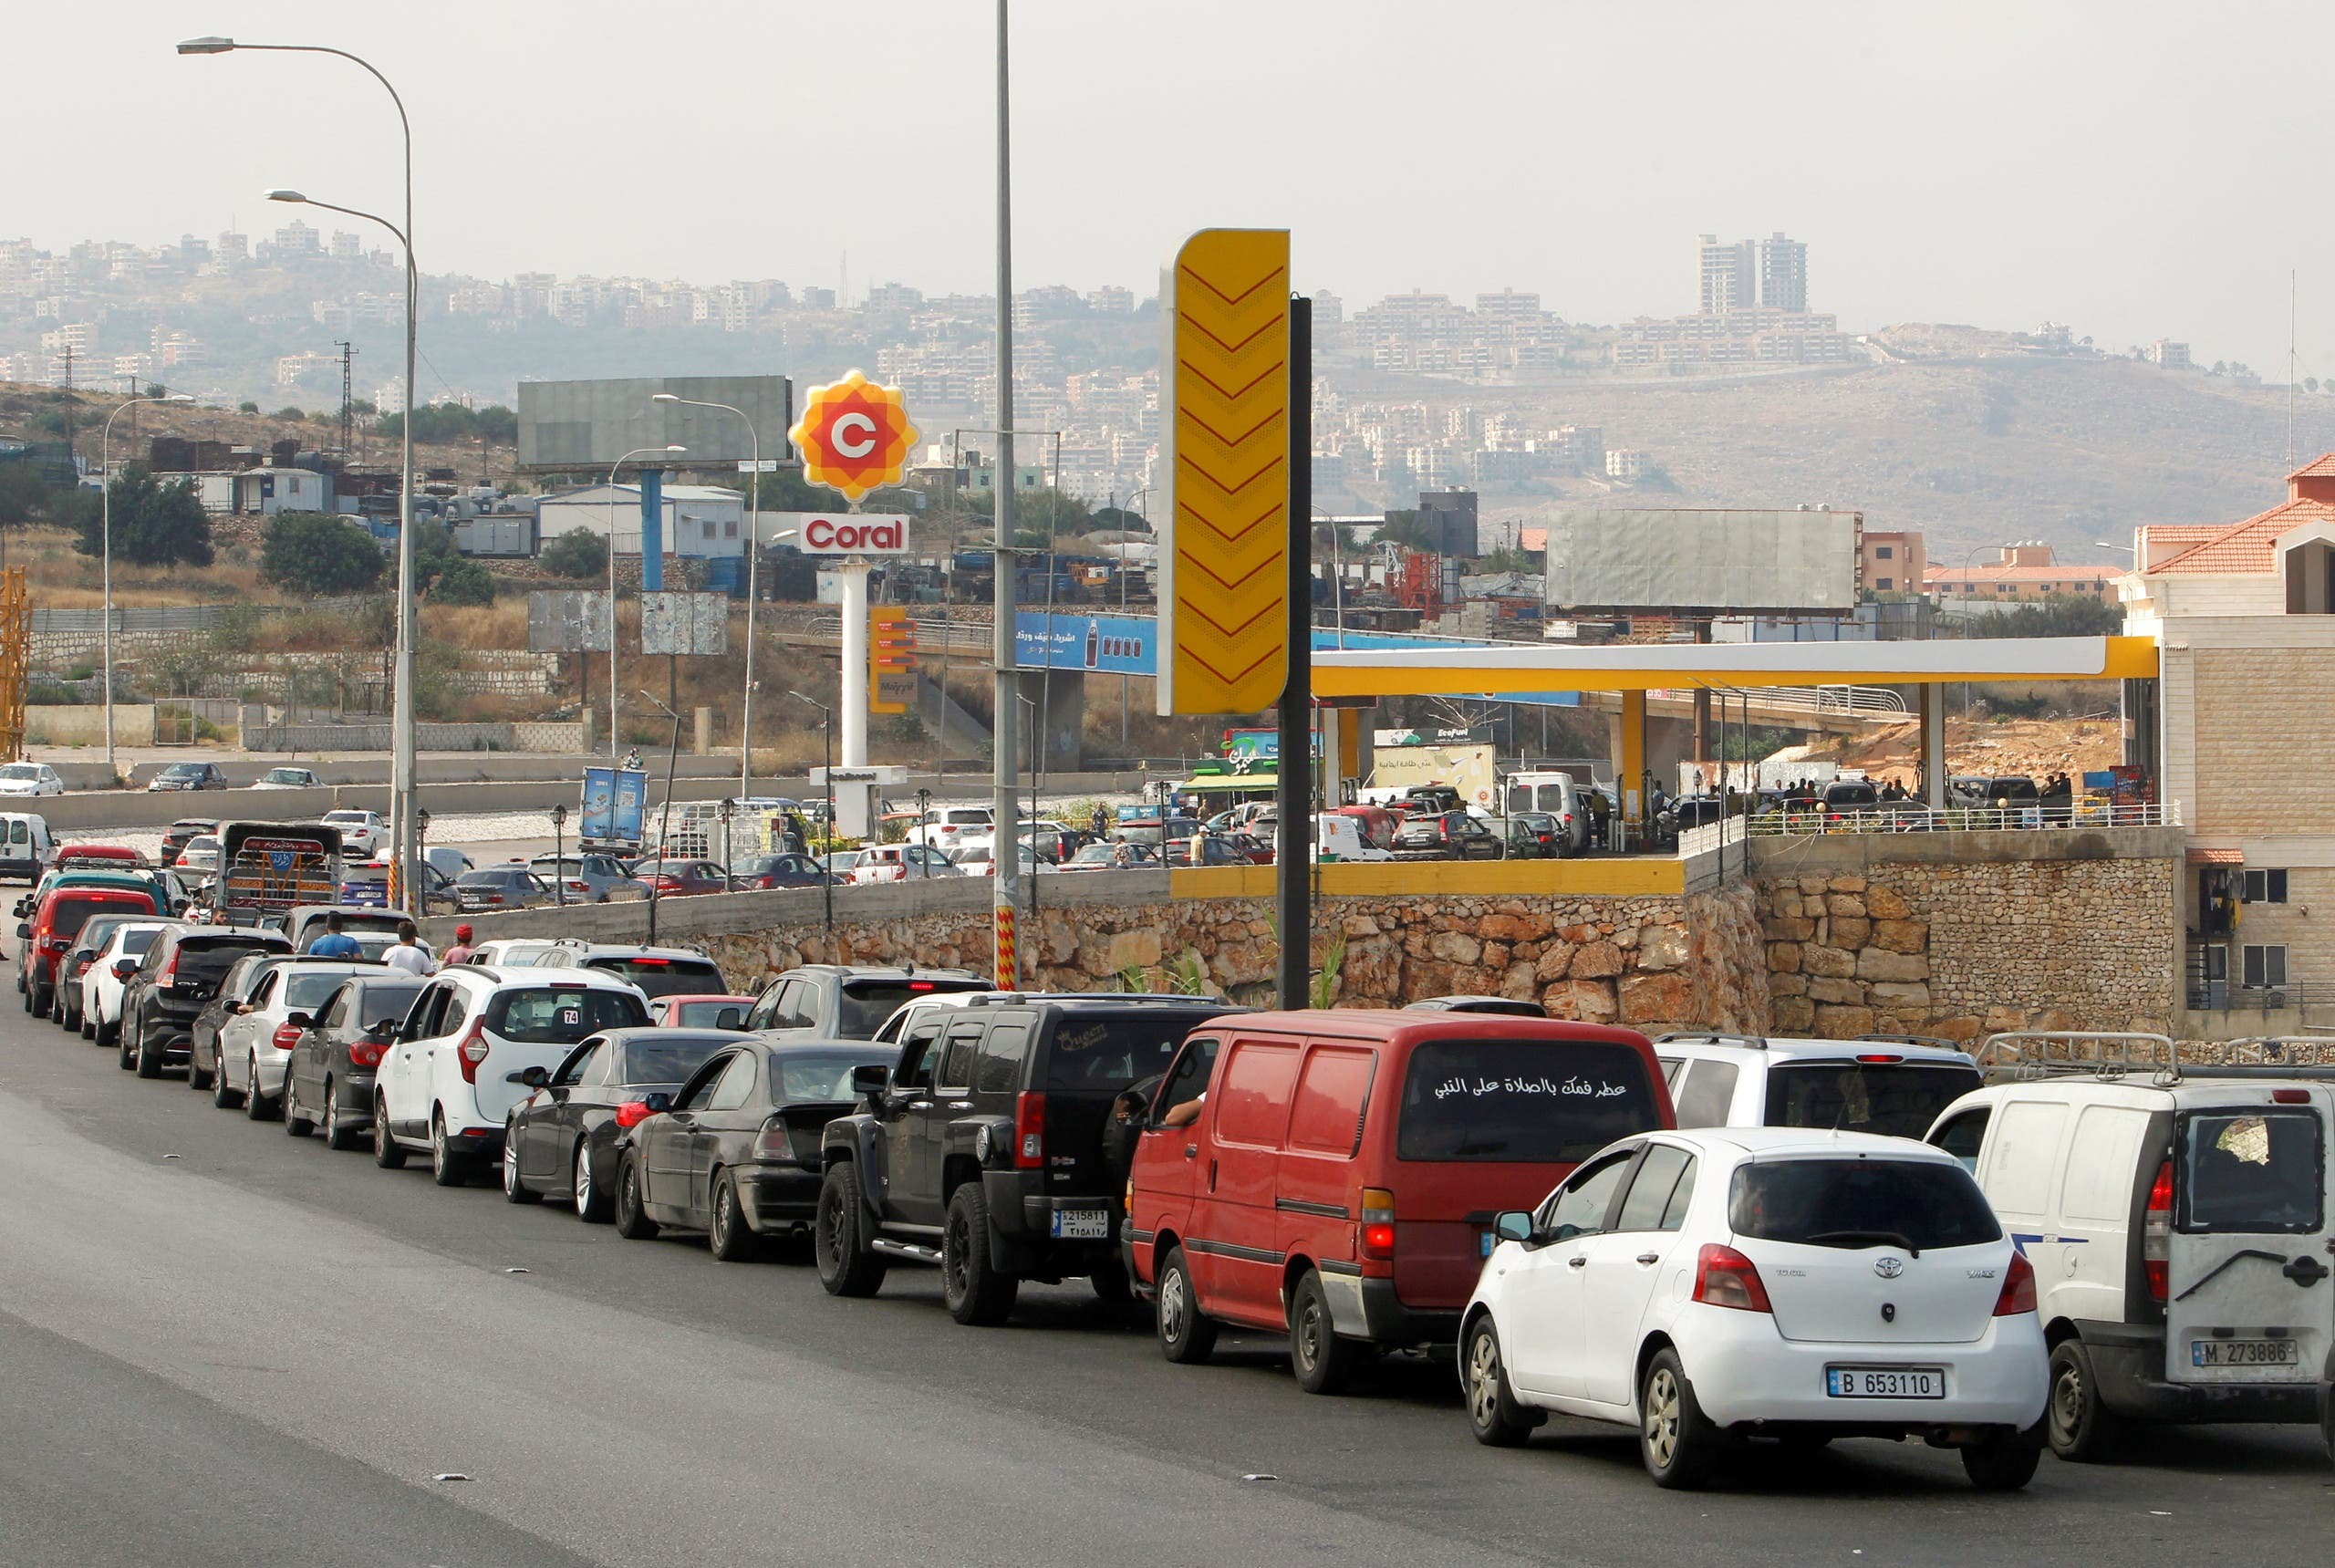 Cars stand in line at a gas station as they wait to fuel up in Damour, Lebanon June 25, 2021. (Reuters)